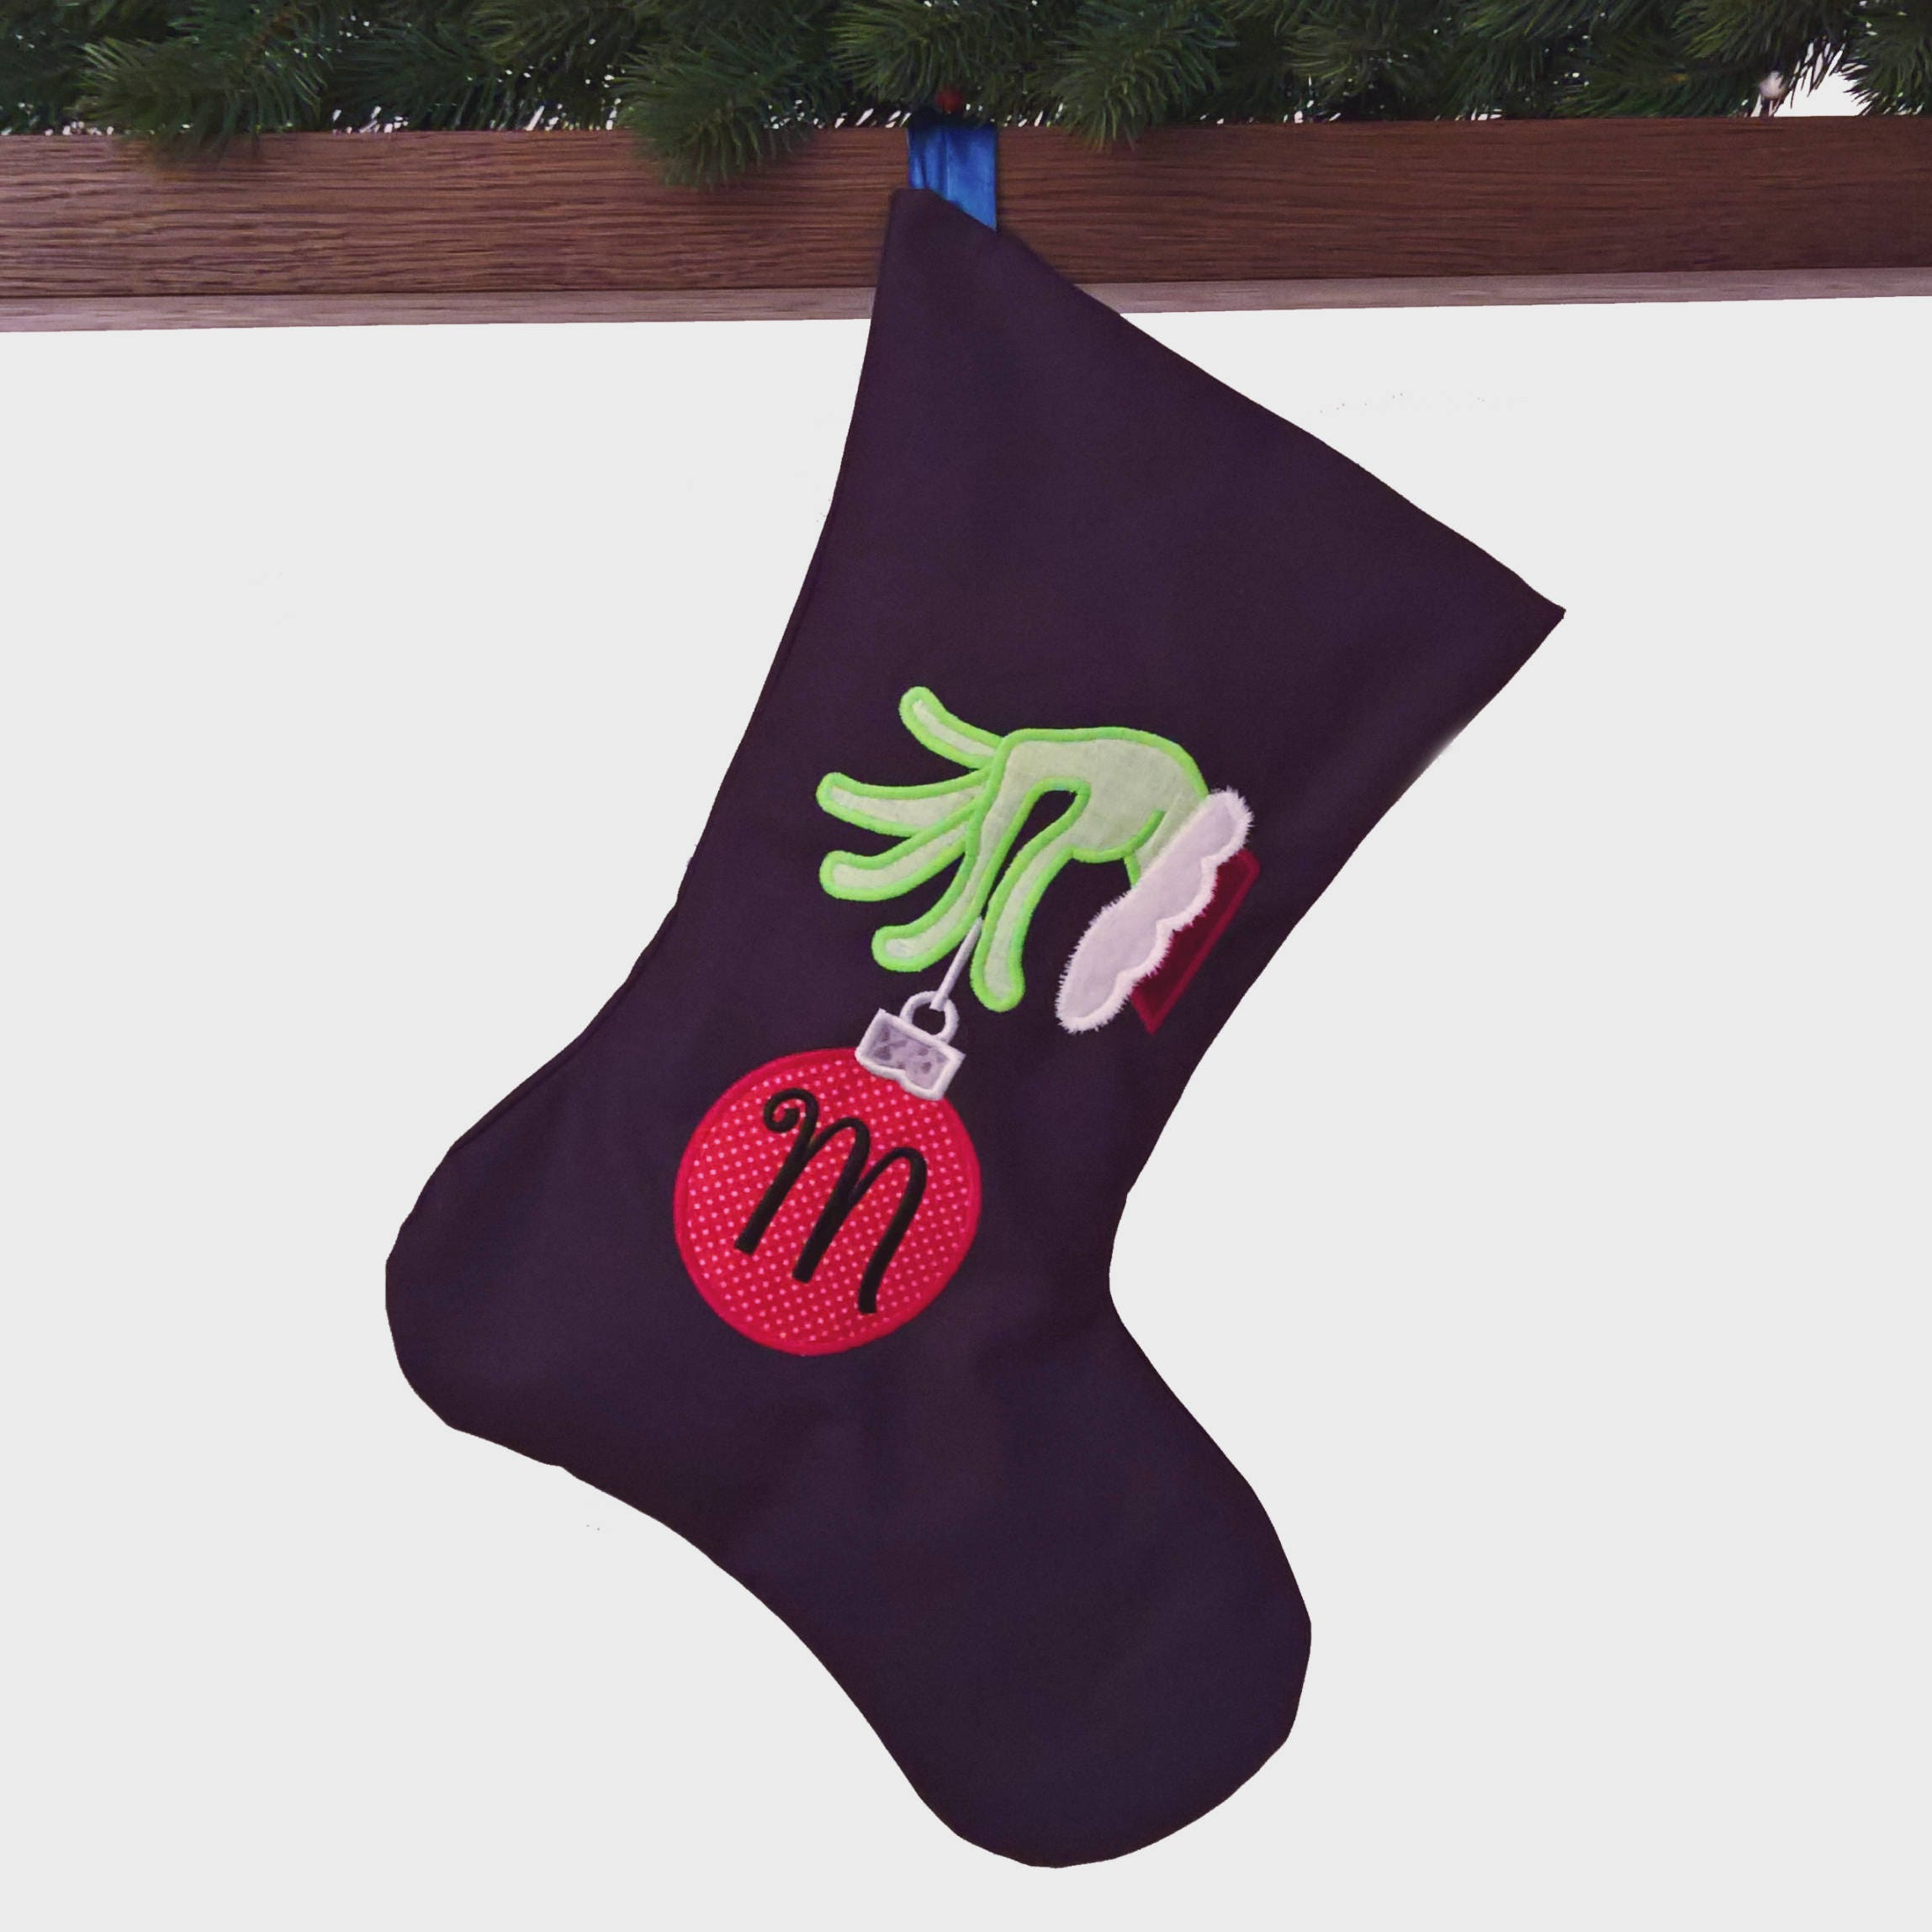 large unique applique handmade grinch christmas stocking dark blue green red bauble with initial spacious personalized gift